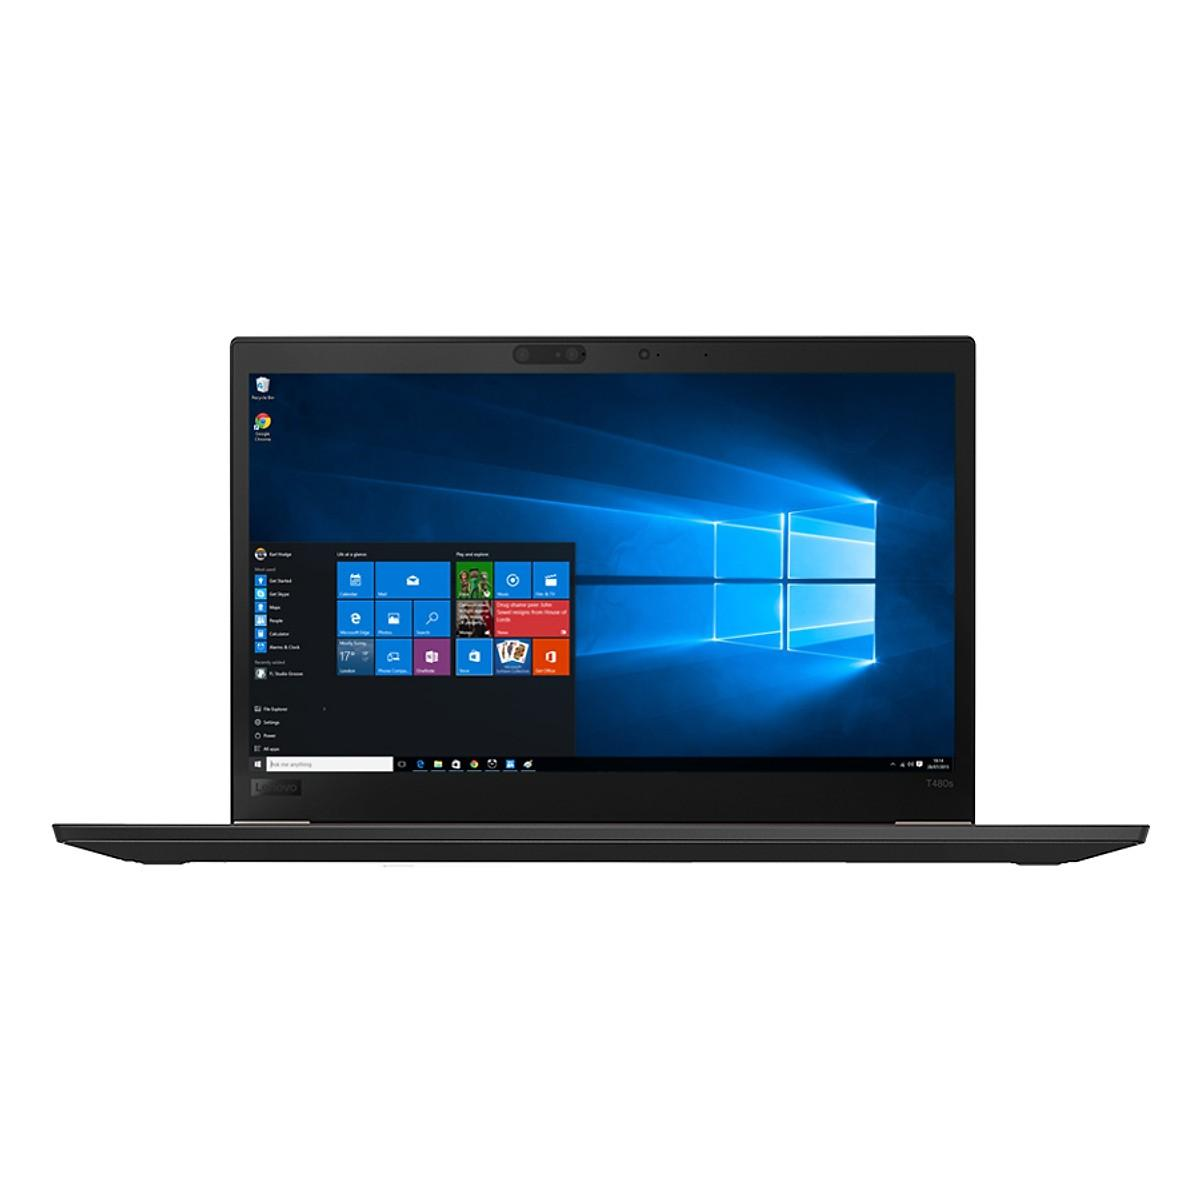 Laptop Lenovo ThinkPad T480s 20L7S00T00 Core i5-8250U/Free Dos (14 inch) (Black)